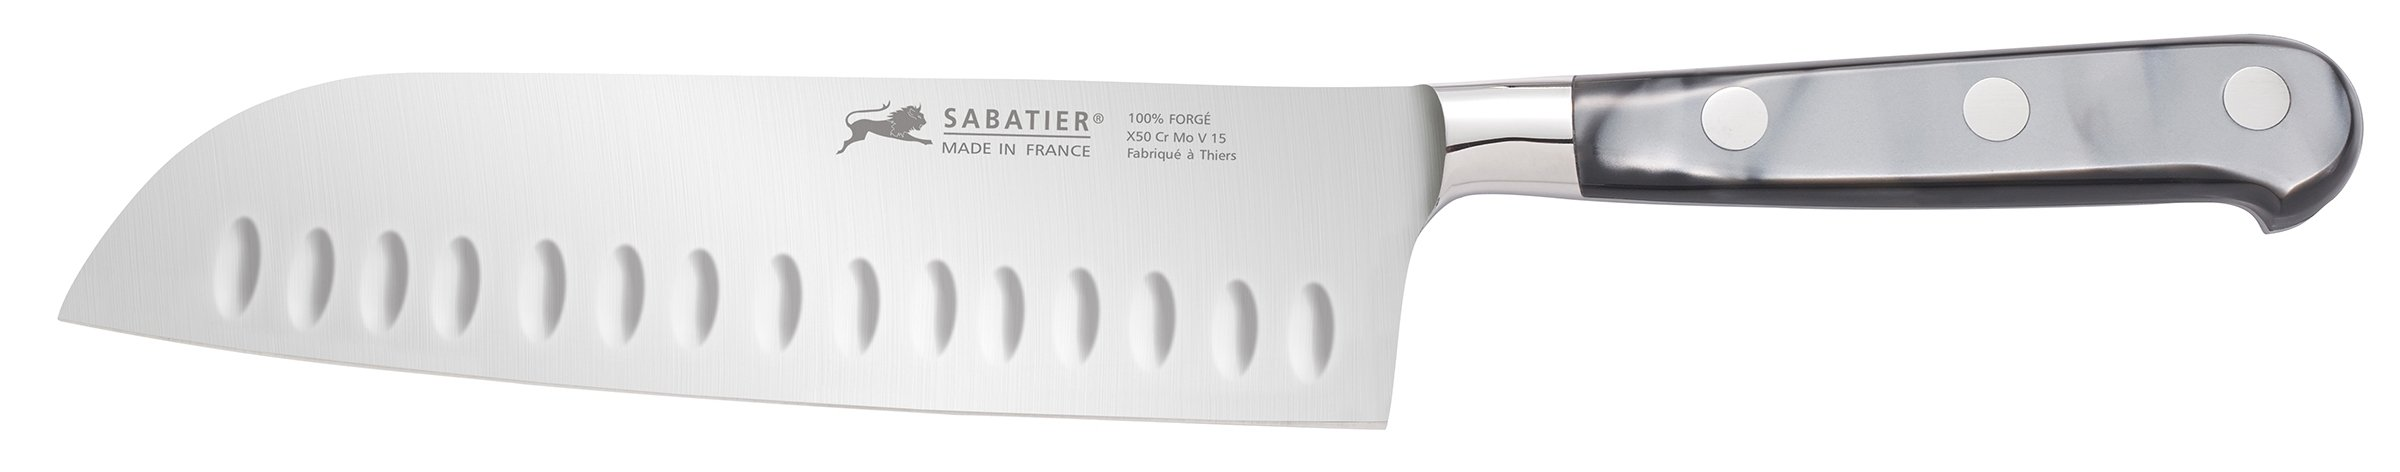 Sabatier Stainless Steel Santoku Knife with Mother of Pearl-Inspired Handle, 7-Inch